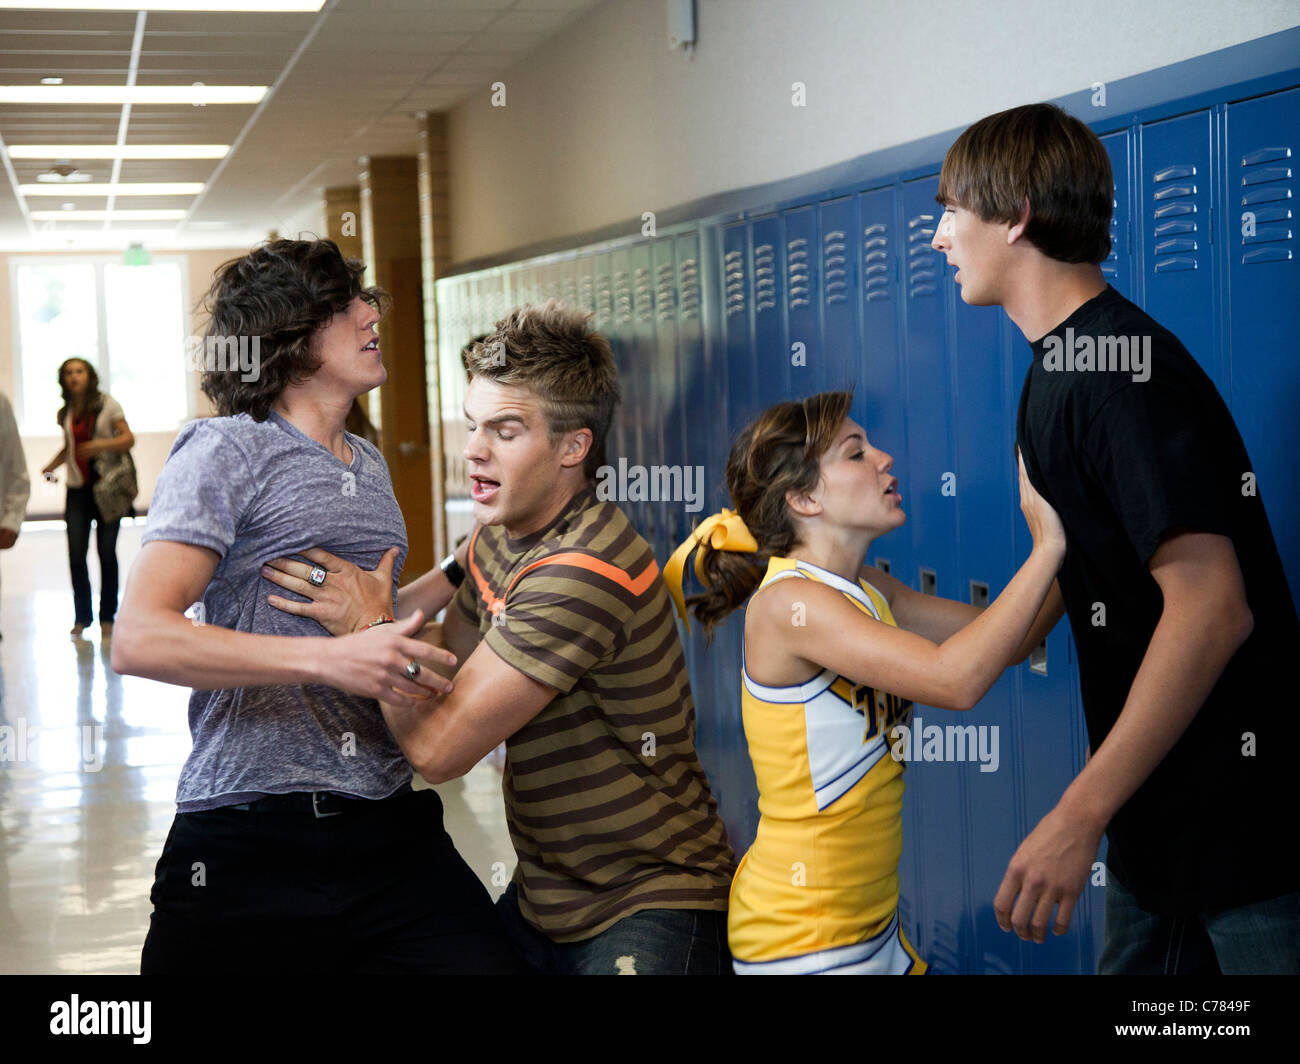 children fighting at school - photo #3